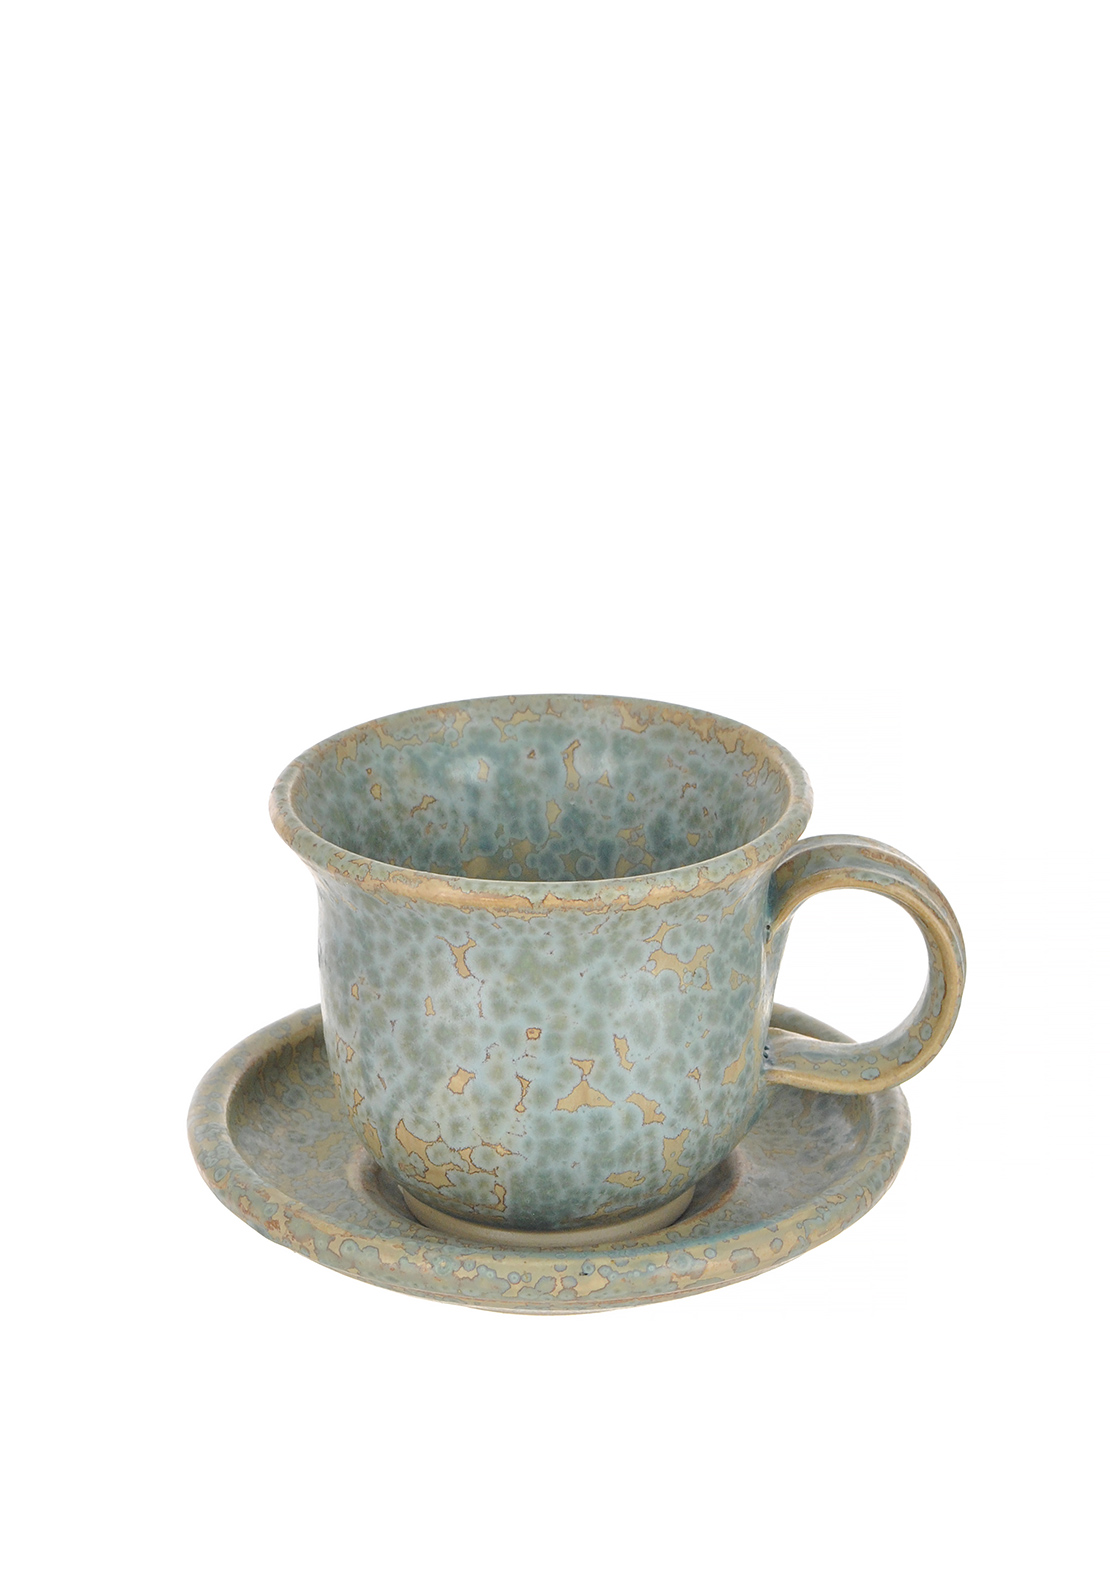 Moville Pottery Tea Cup & Saucer Set